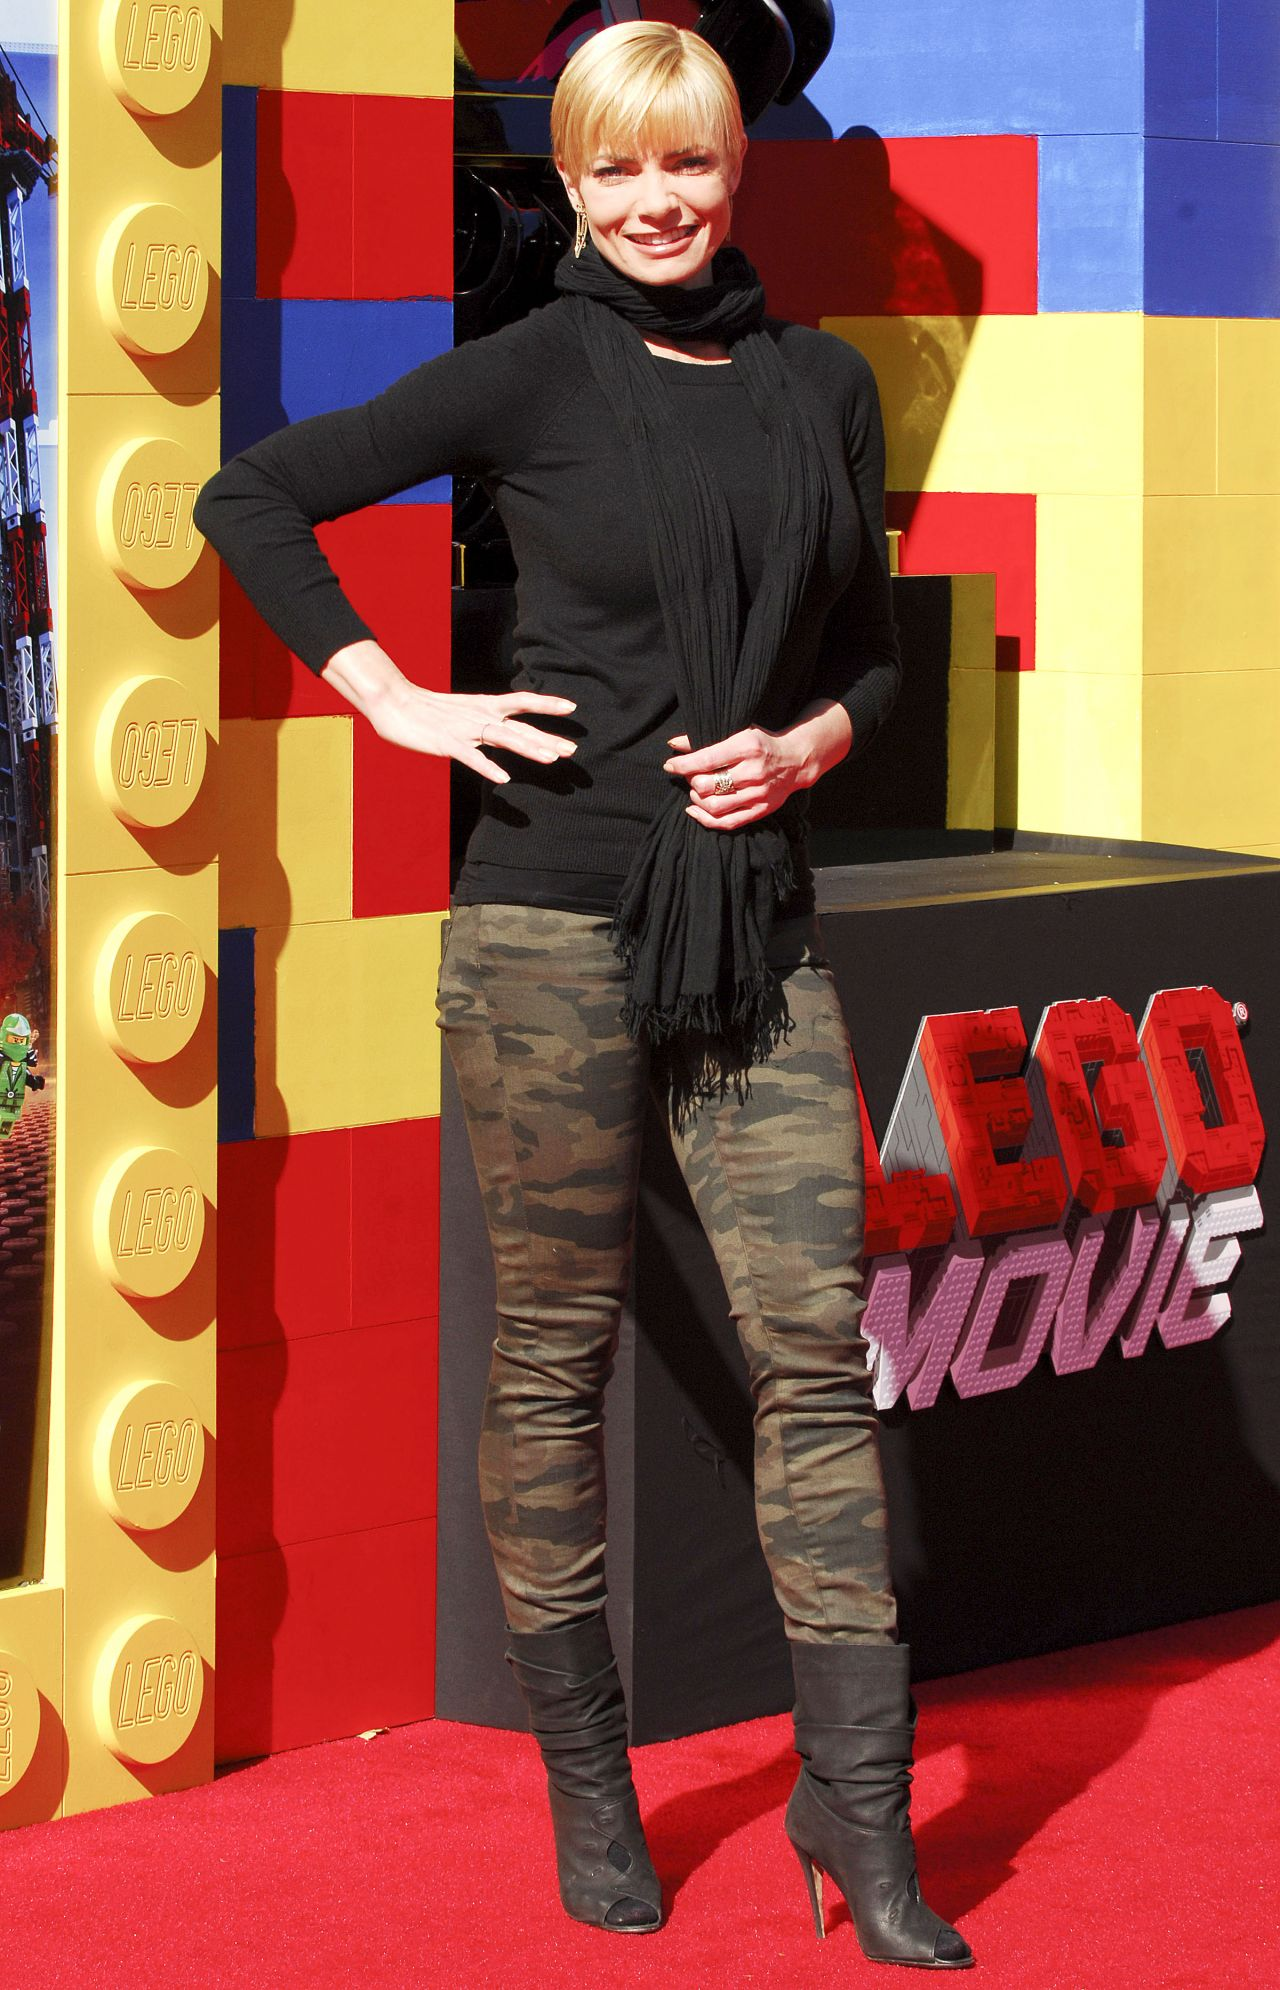 Jaime Pressly on Red Carpet - THE LEGO MOVIE Premiere in Los Angeles